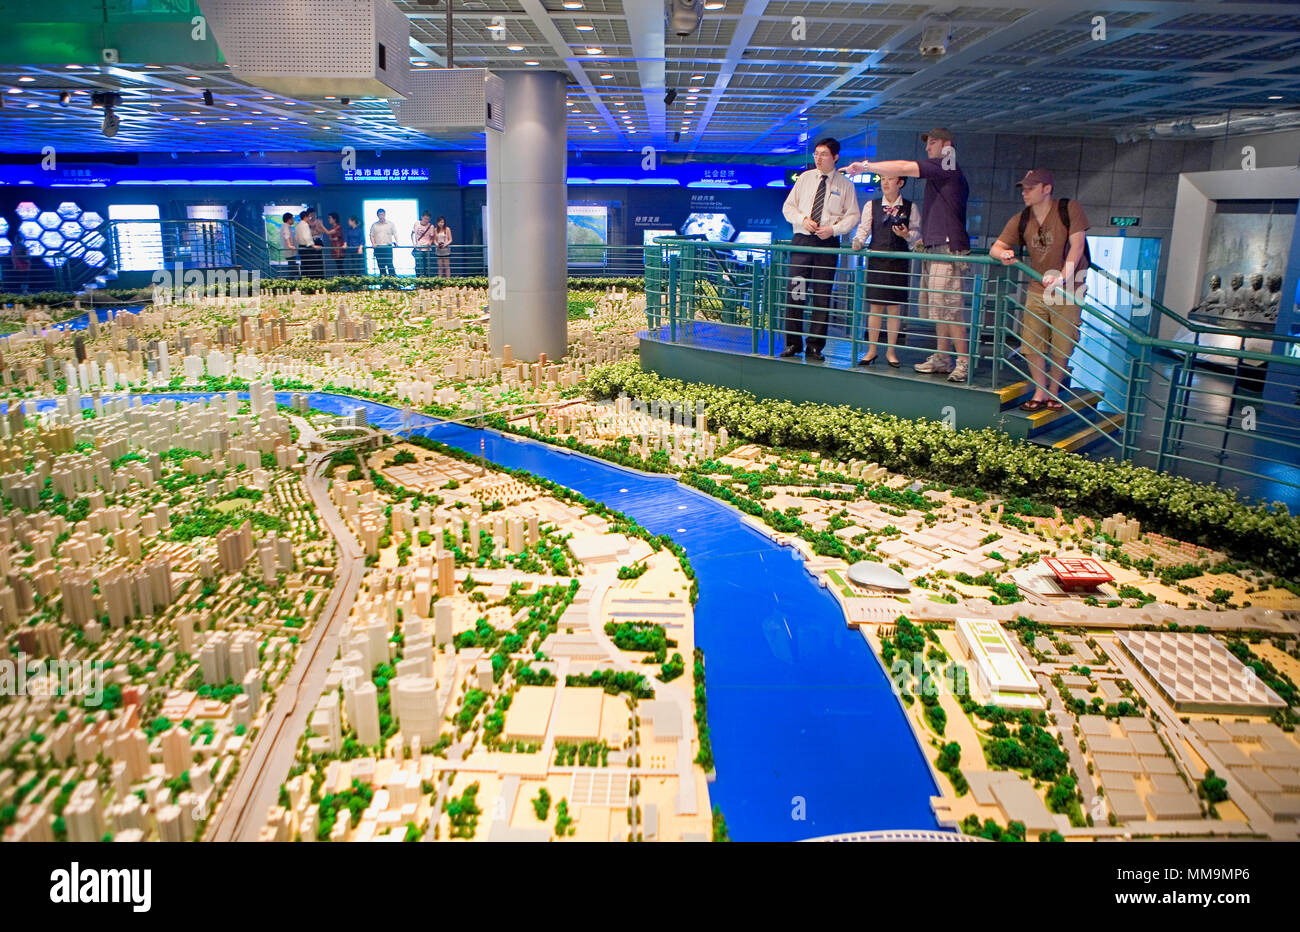 China.Shanghai: Shanghai Urban Planning Exhibition Center - Stock Image